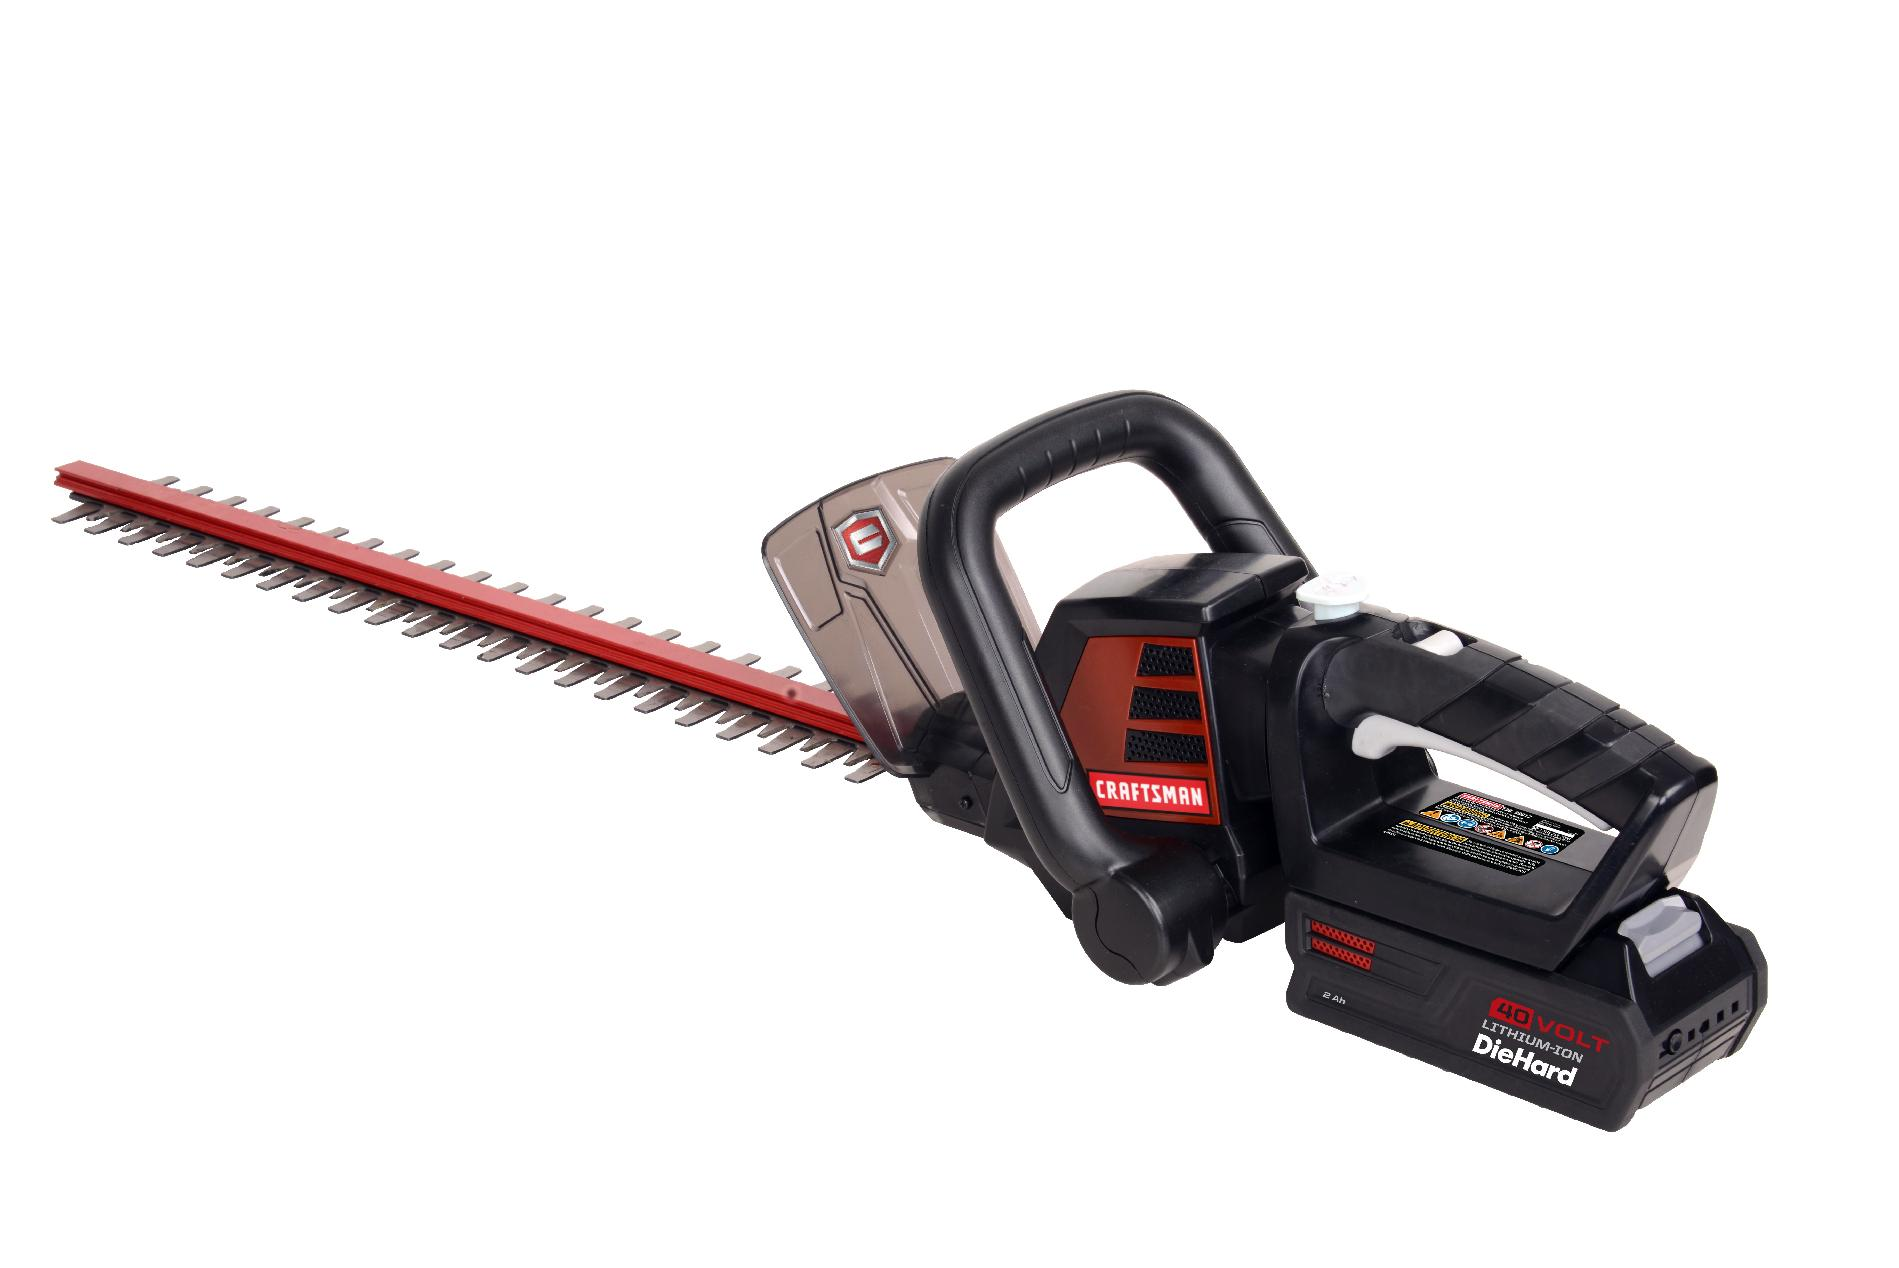 Craftsman 40-Volt Lithium-Ion Hedge Trimmer